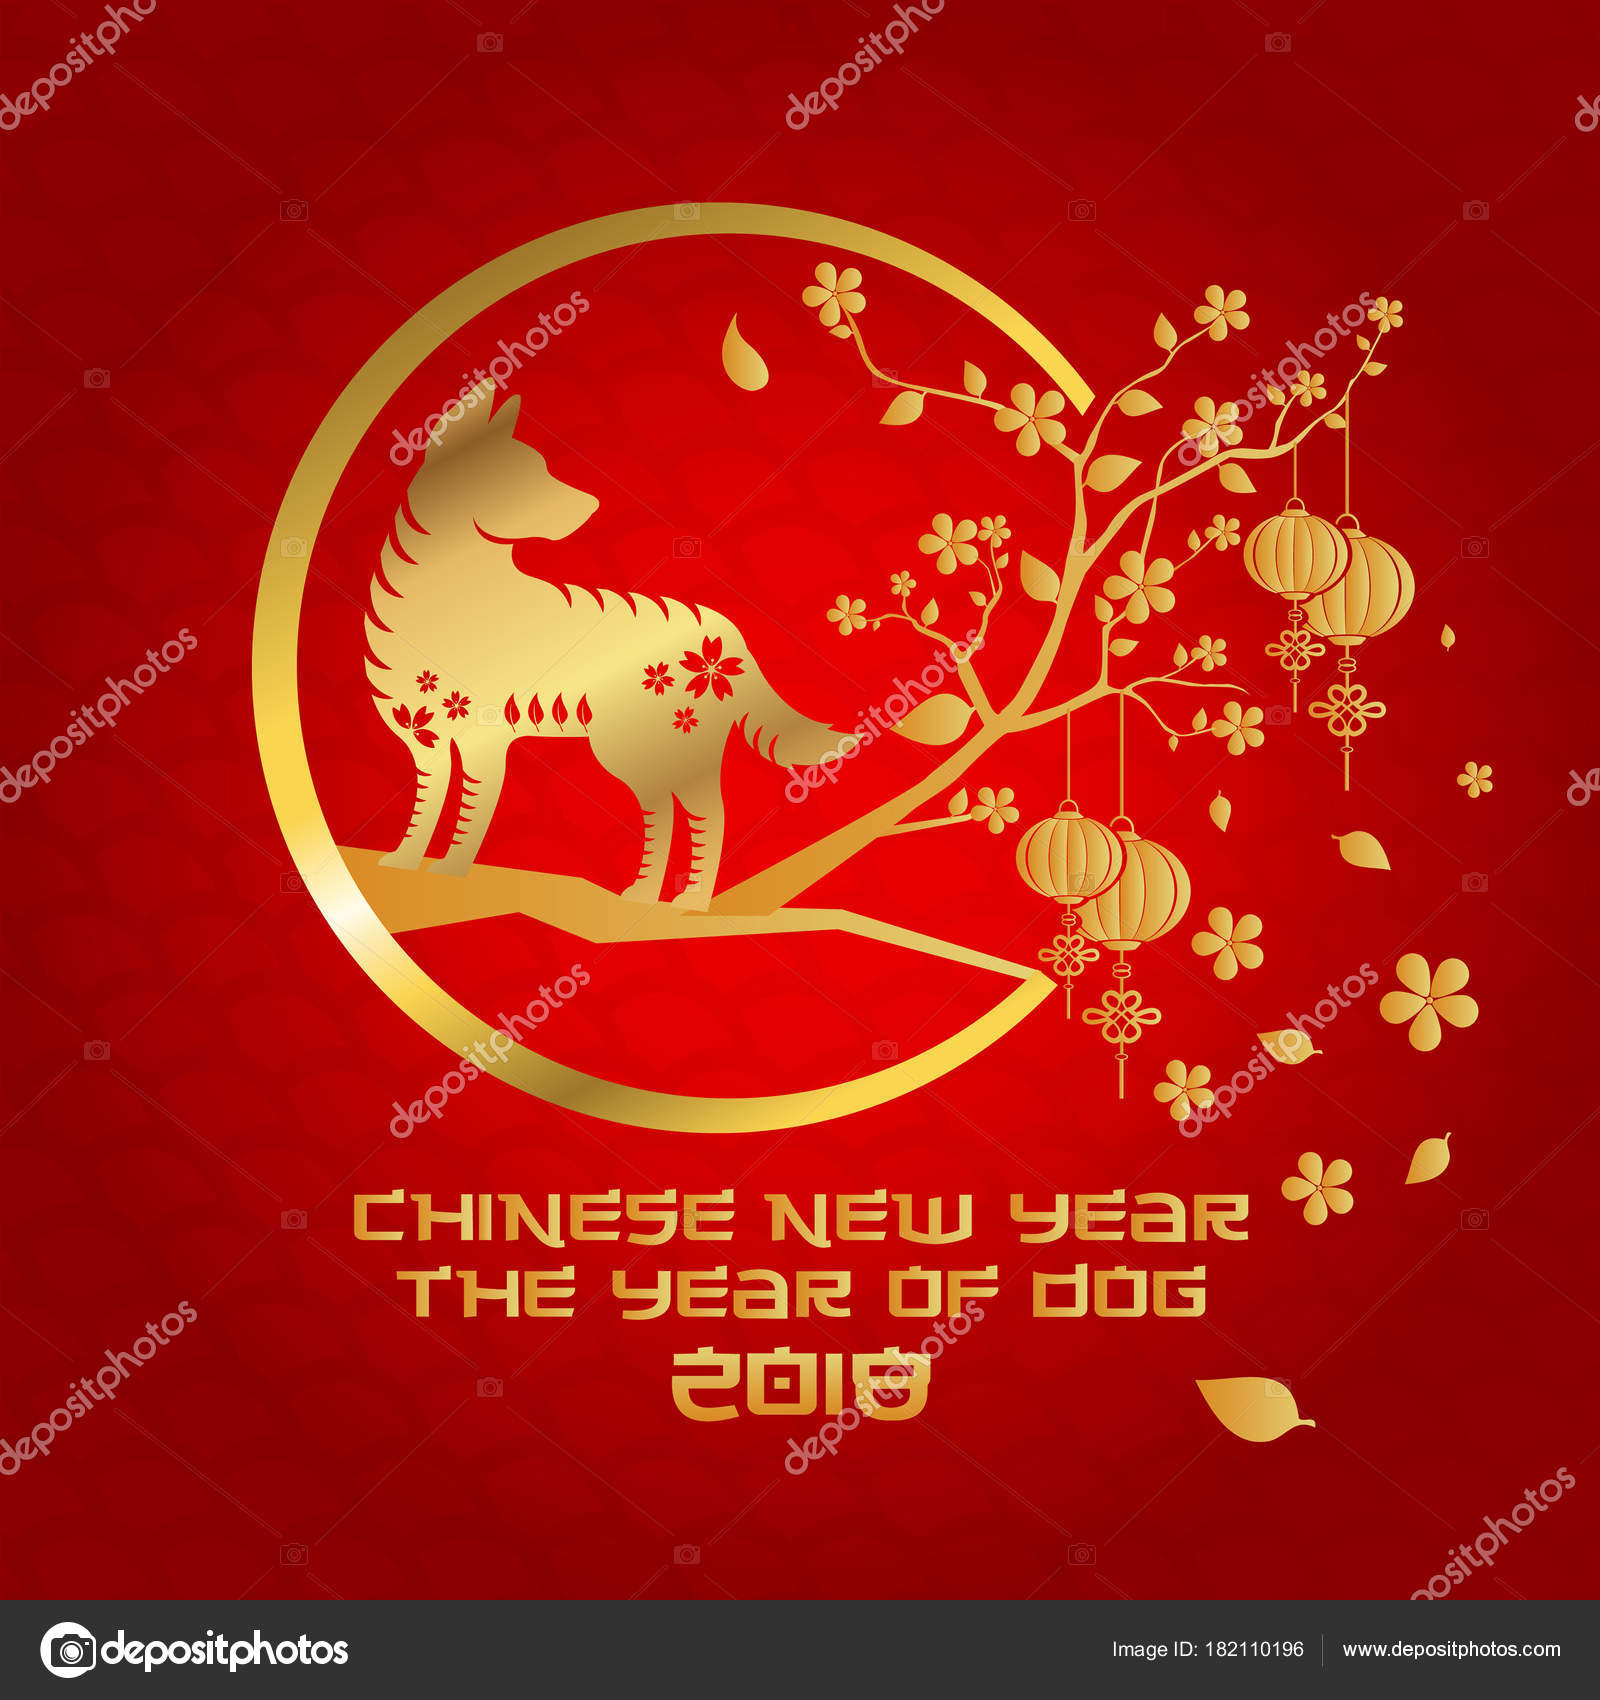 chinese new year 2018 dog year banner and card design suitable for social media banner flyer card party invitation and other chinese new year related